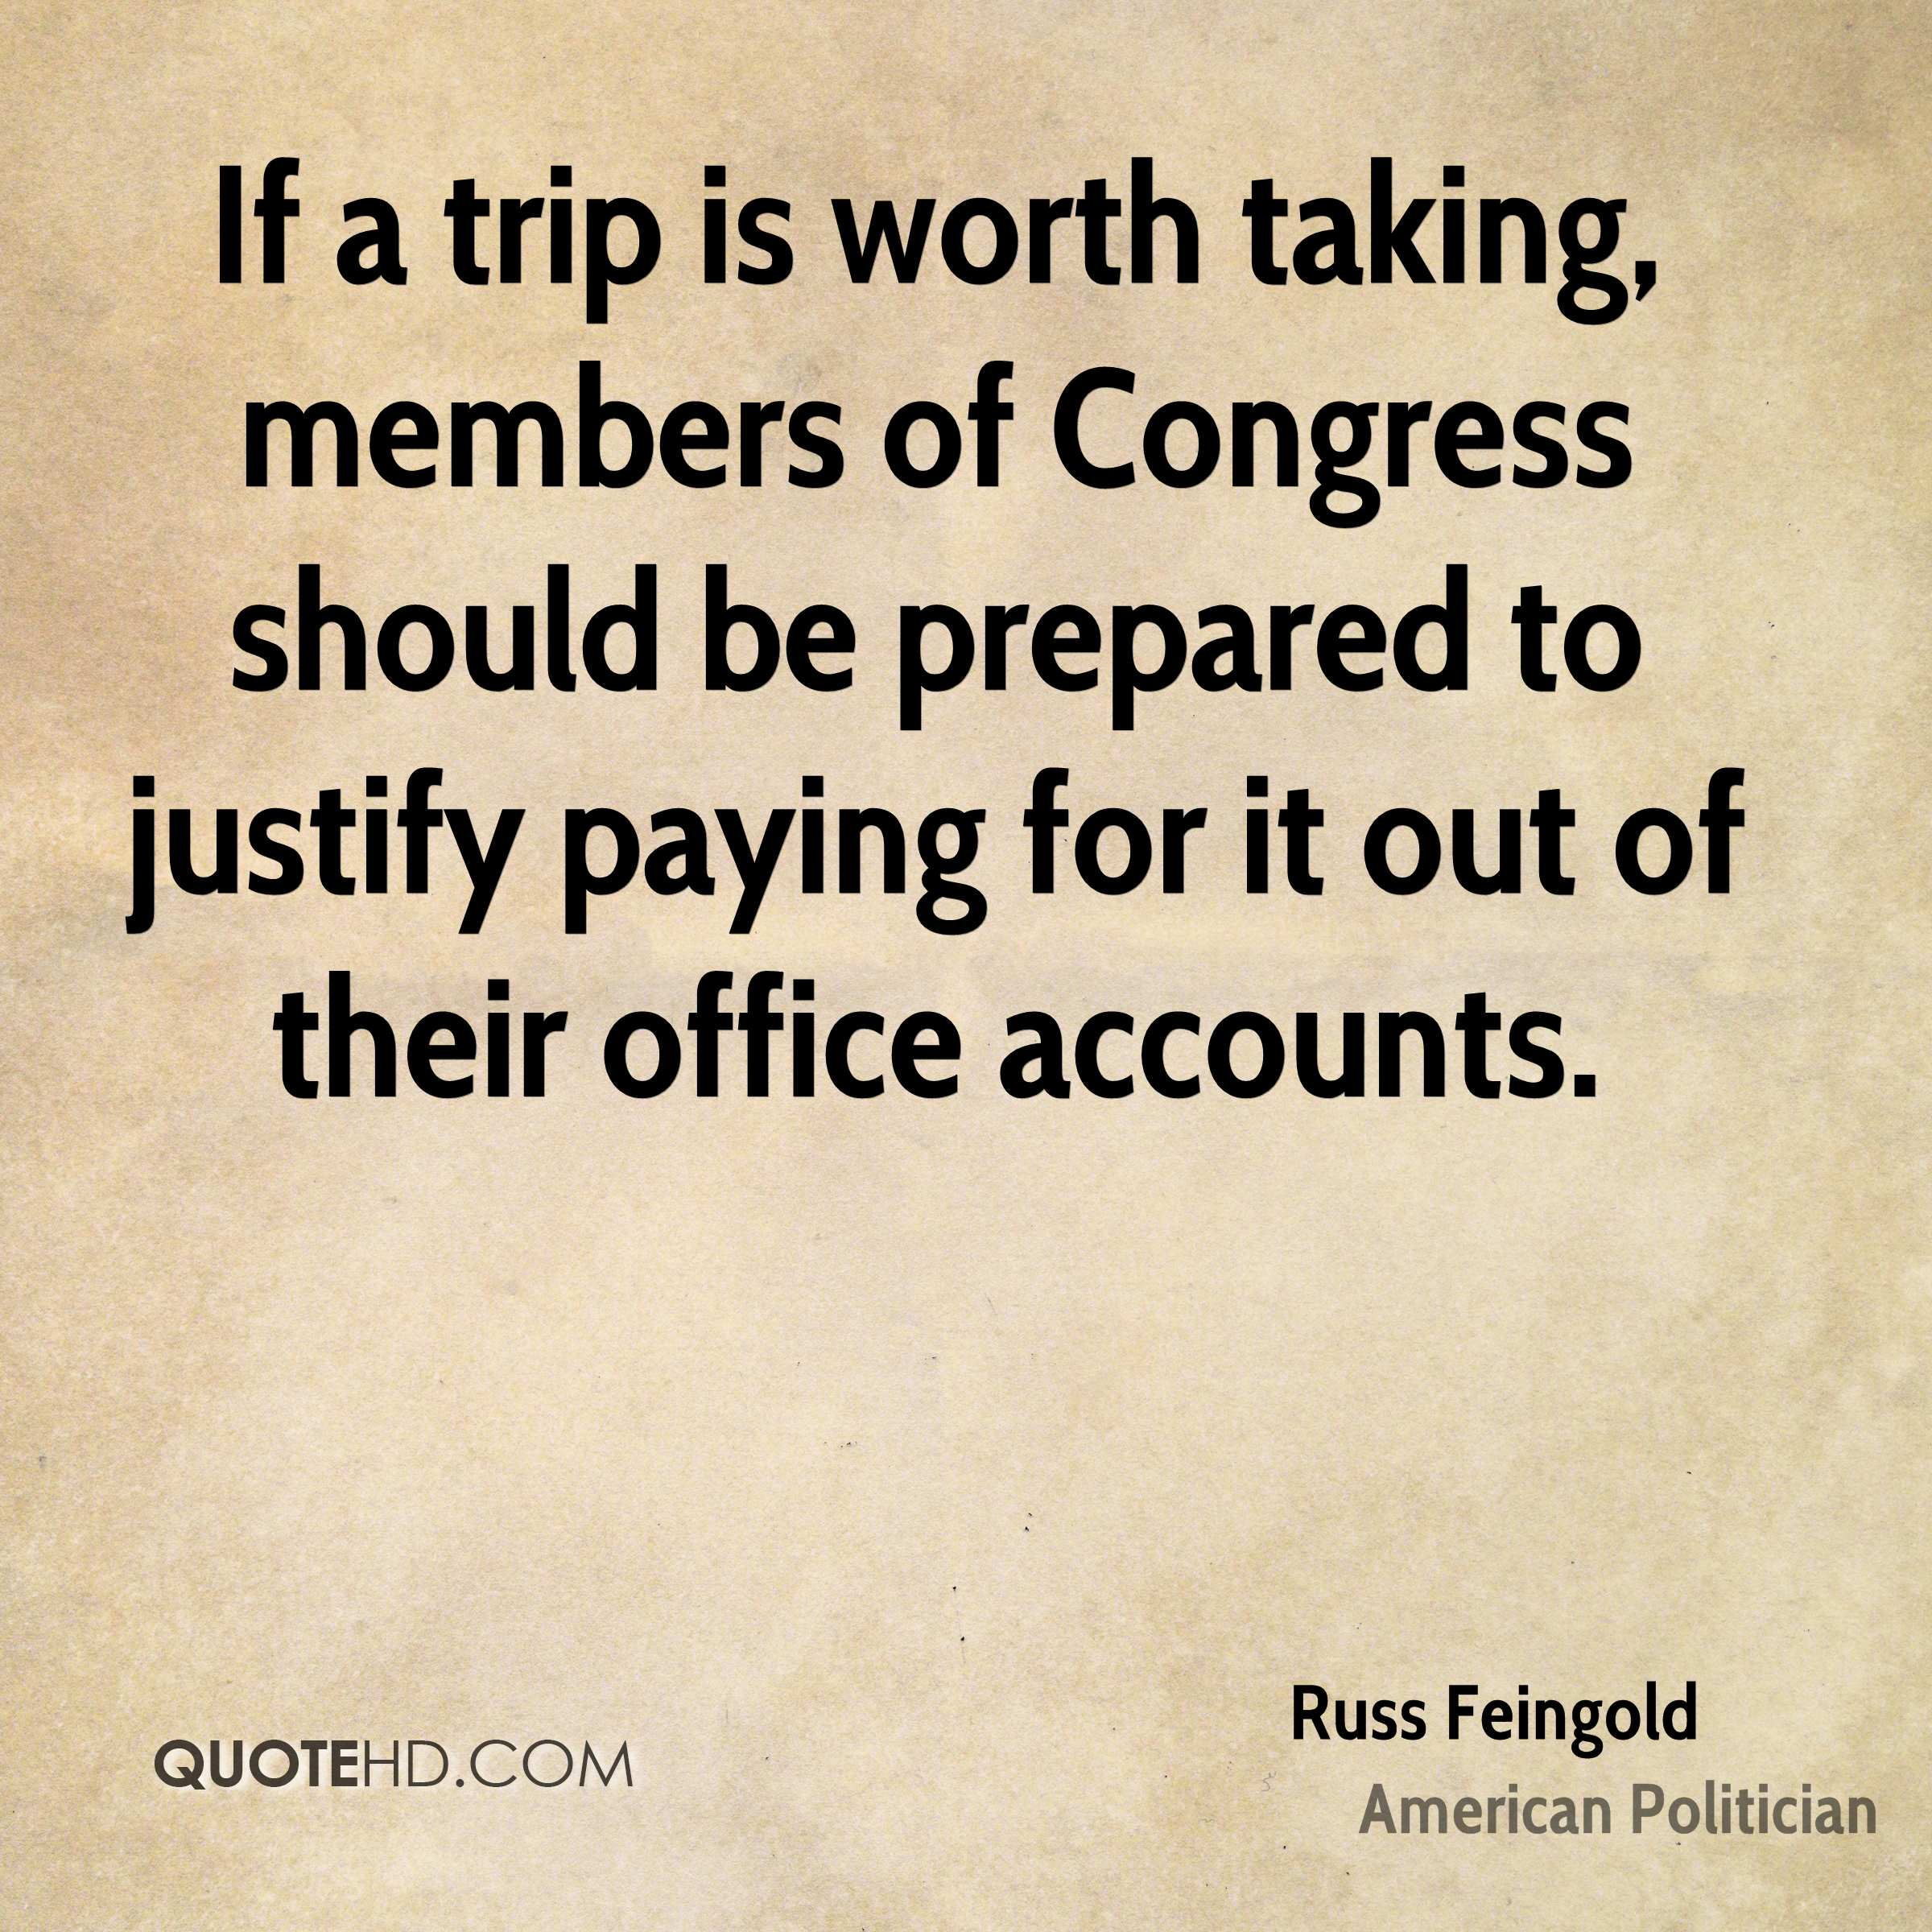 If a trip is worth taking, members of Congress should be prepared to justify paying for it out of their office accounts.